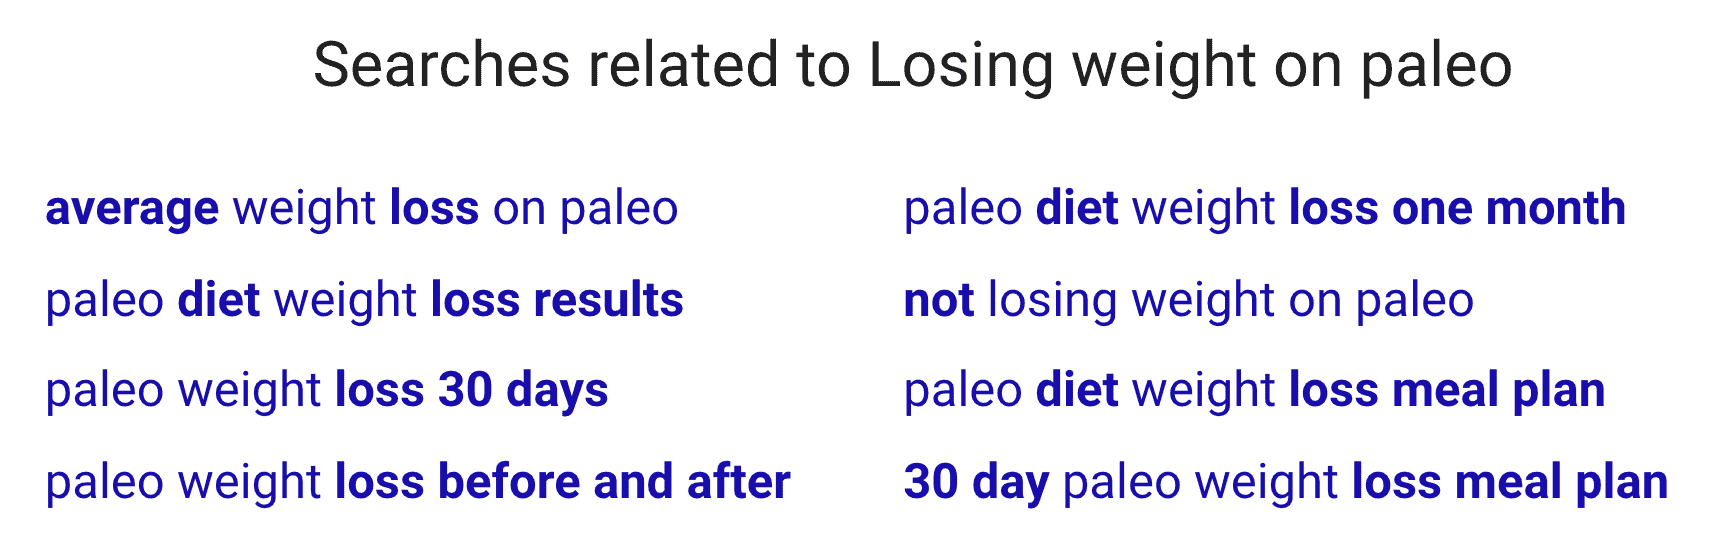 """Searches related to """"Losing weight on paleo"""""""